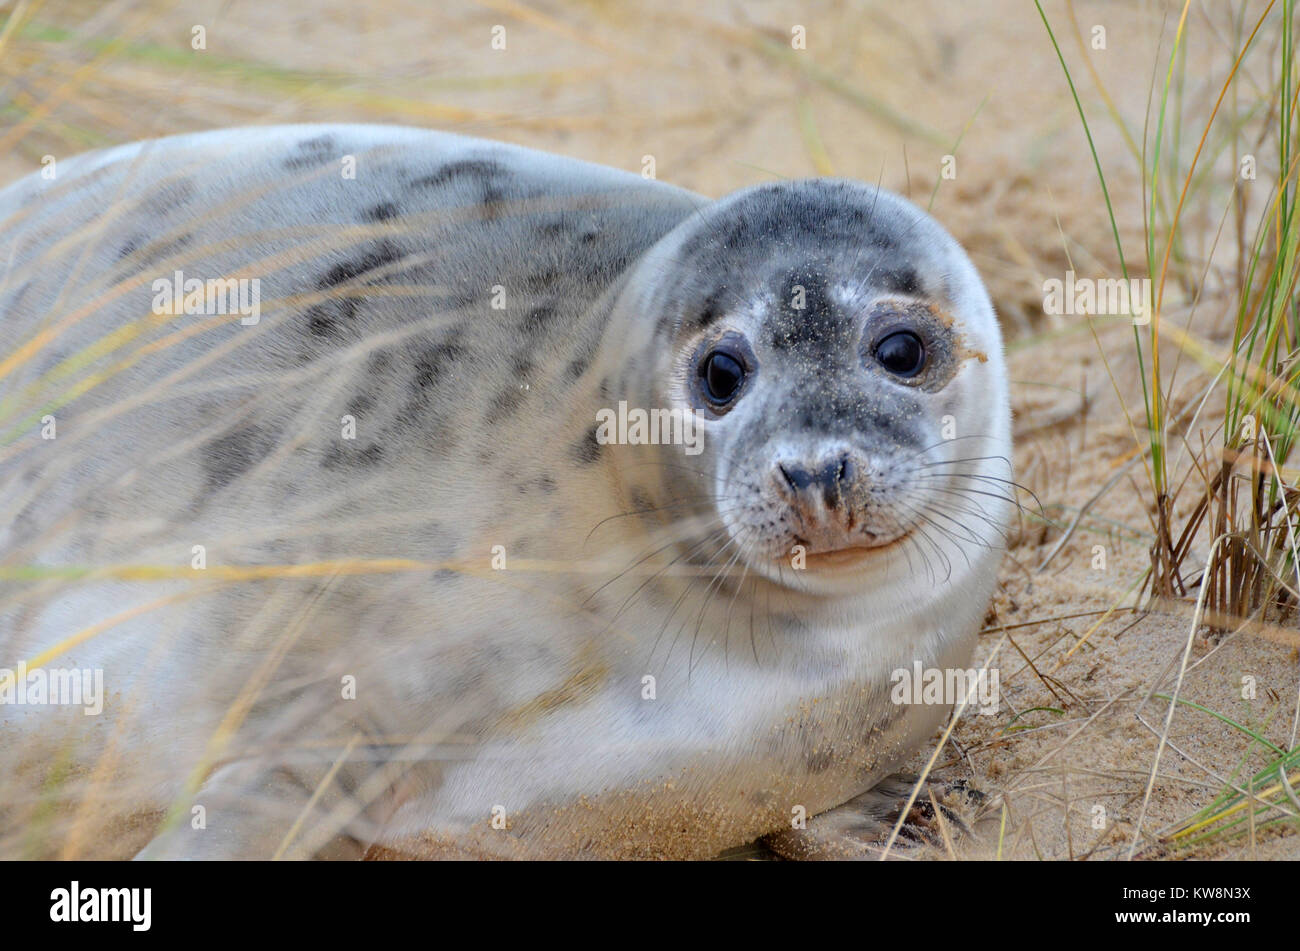 A young seal pup on Horsey Beach, North Norfolk, UK on New Year's EveStock Photo